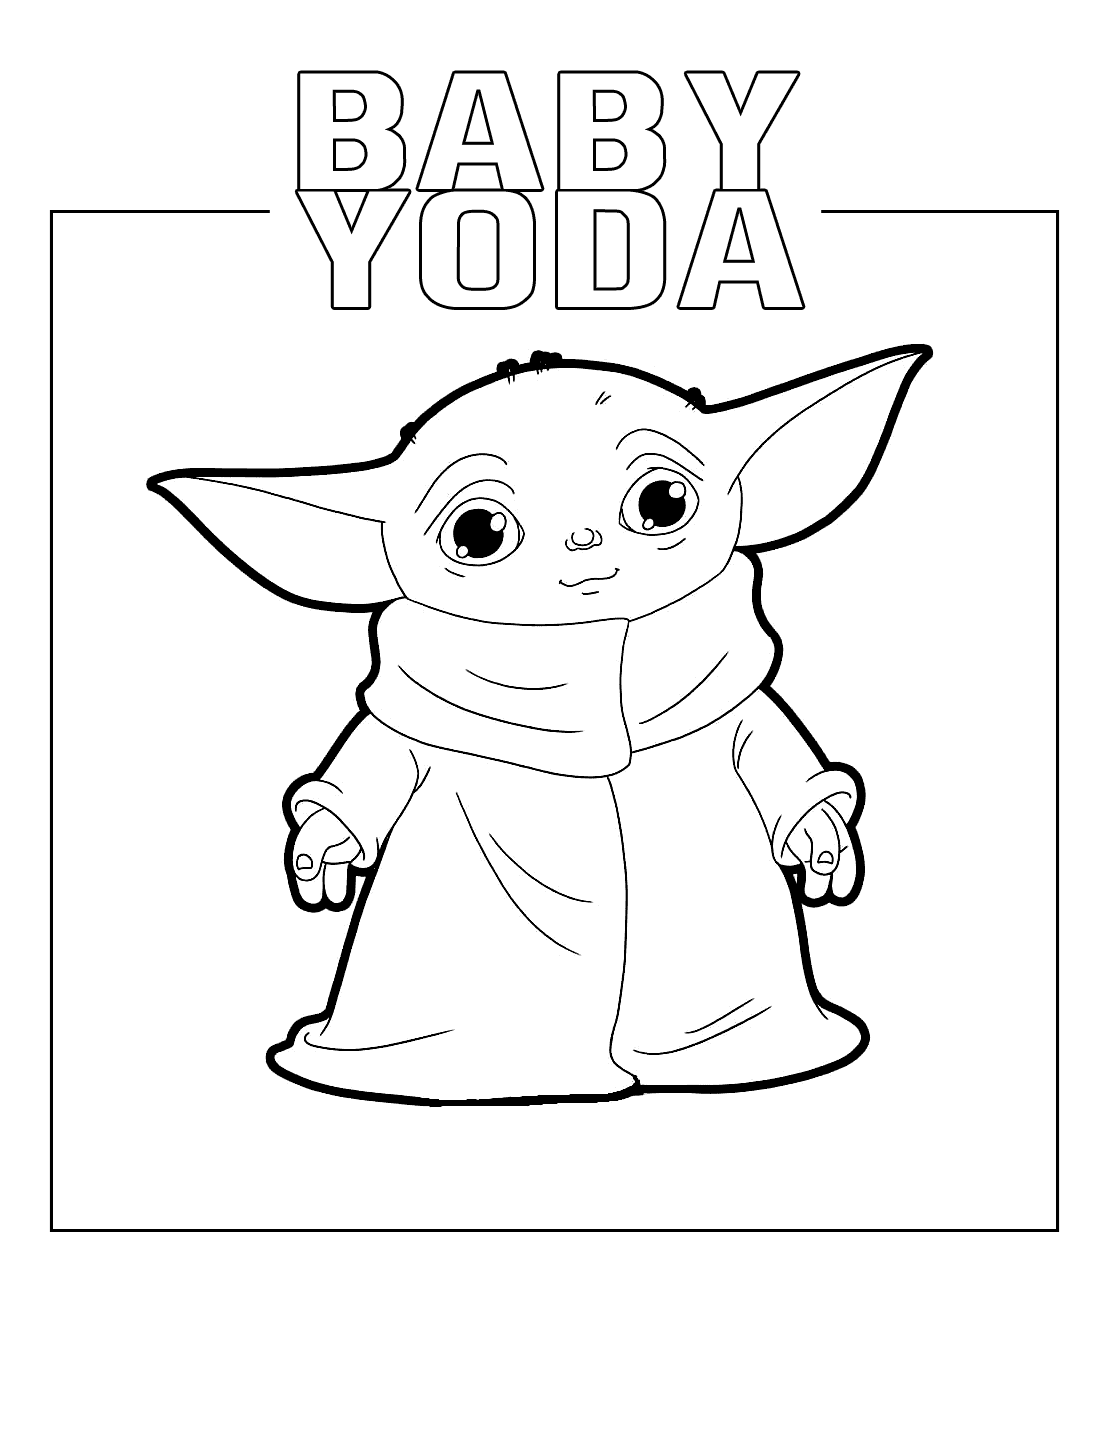 Baby Yoda Coloring Pages